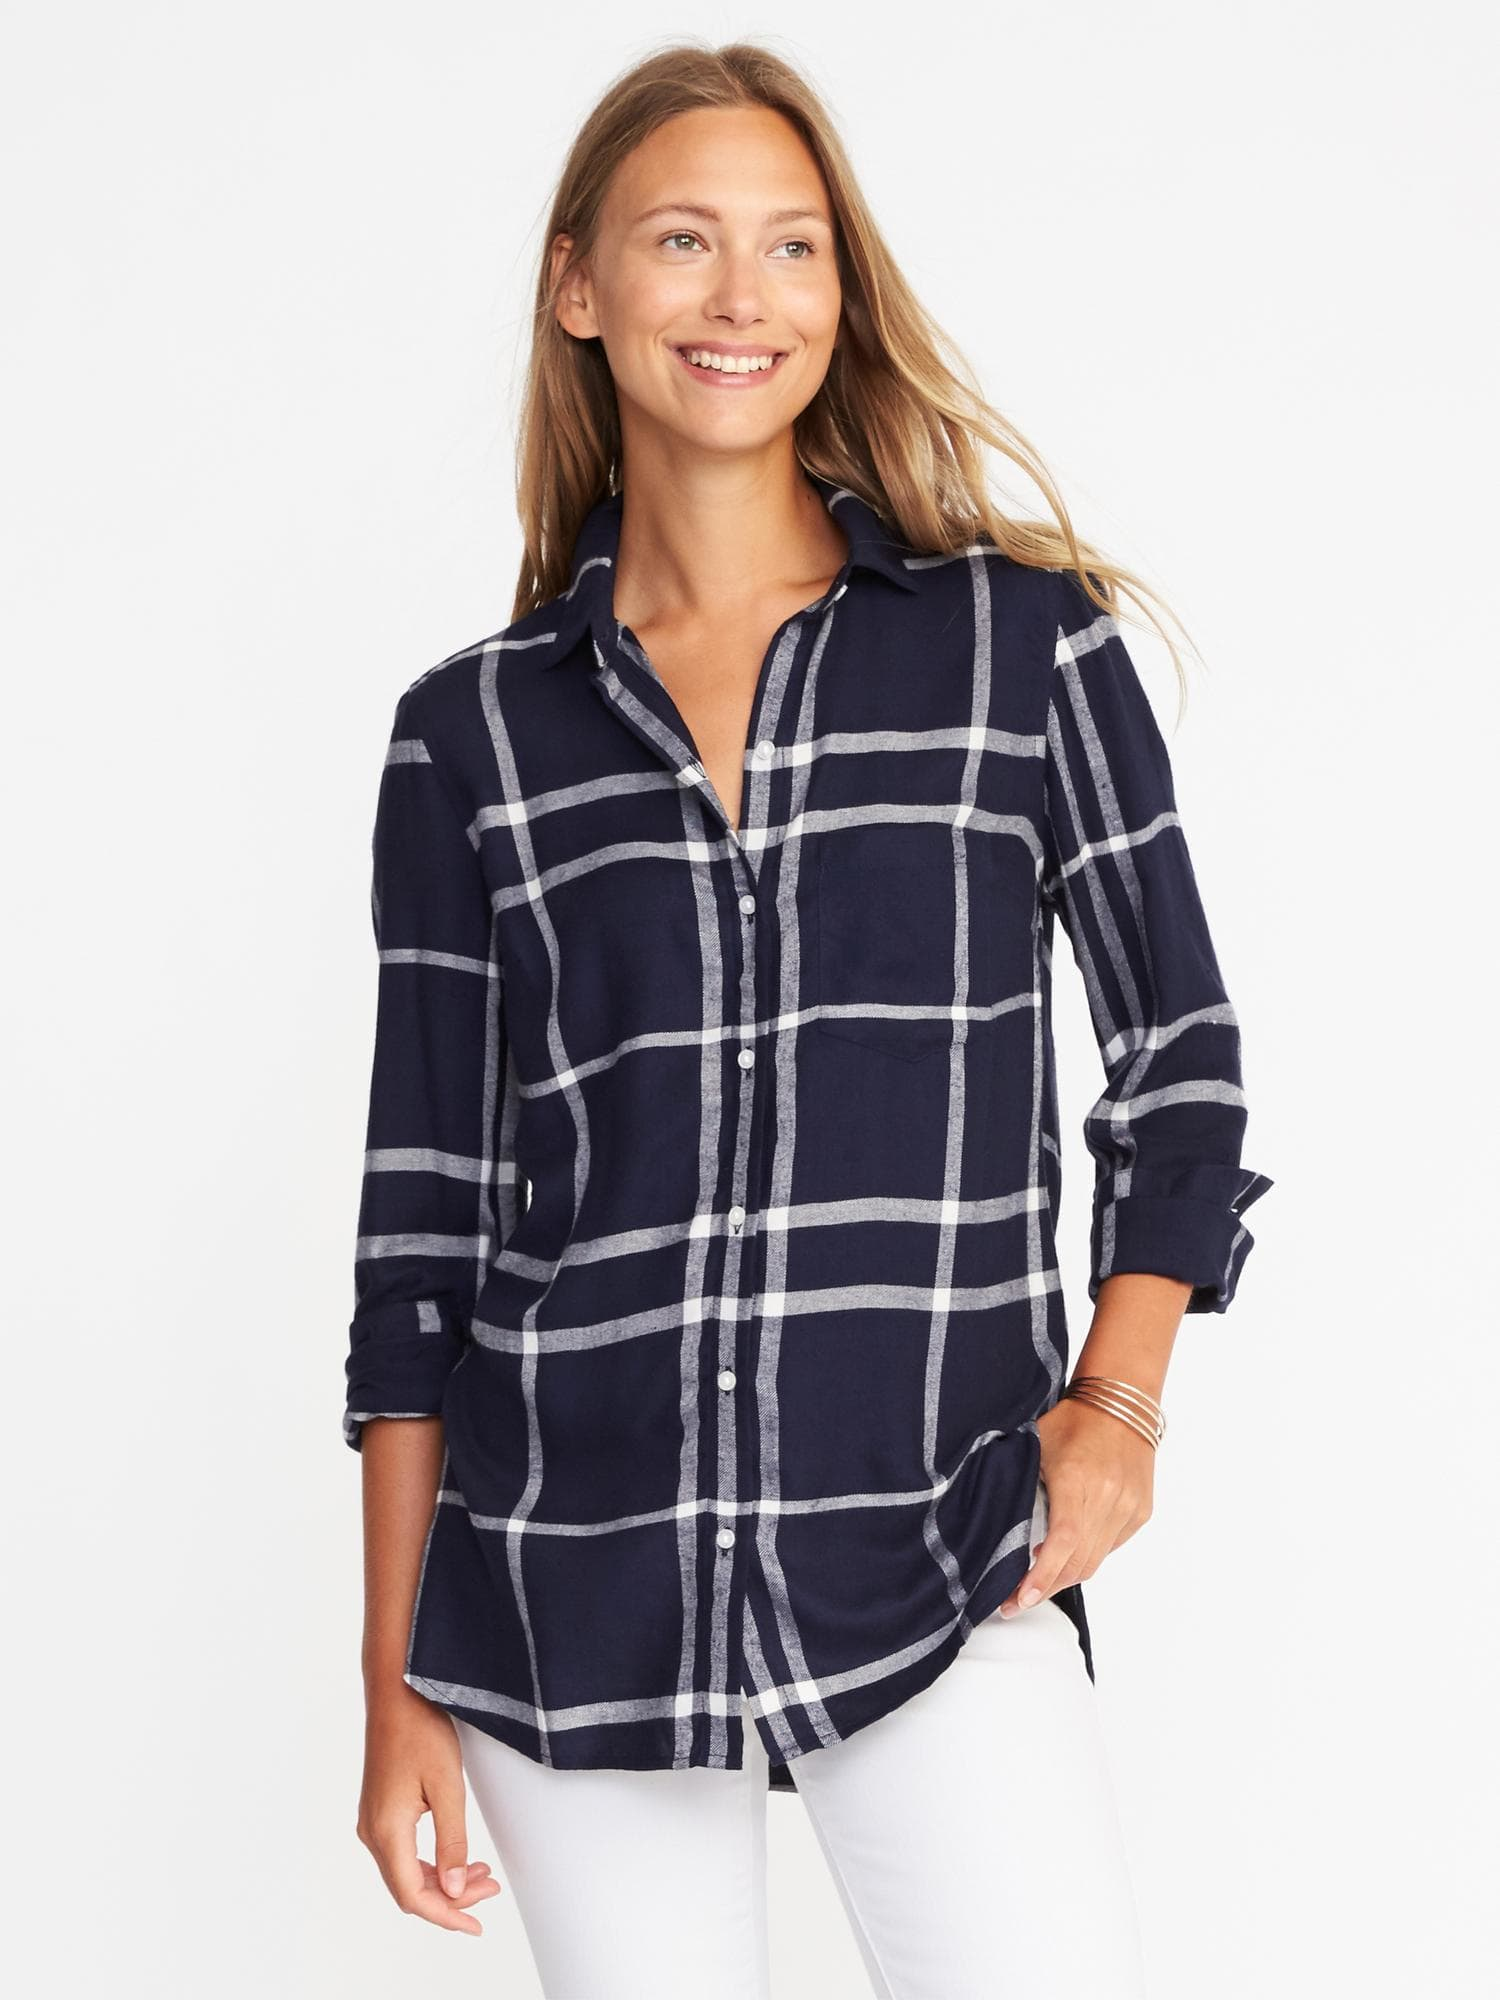 Old Navy Relaxed Plaid Shirt $29.99